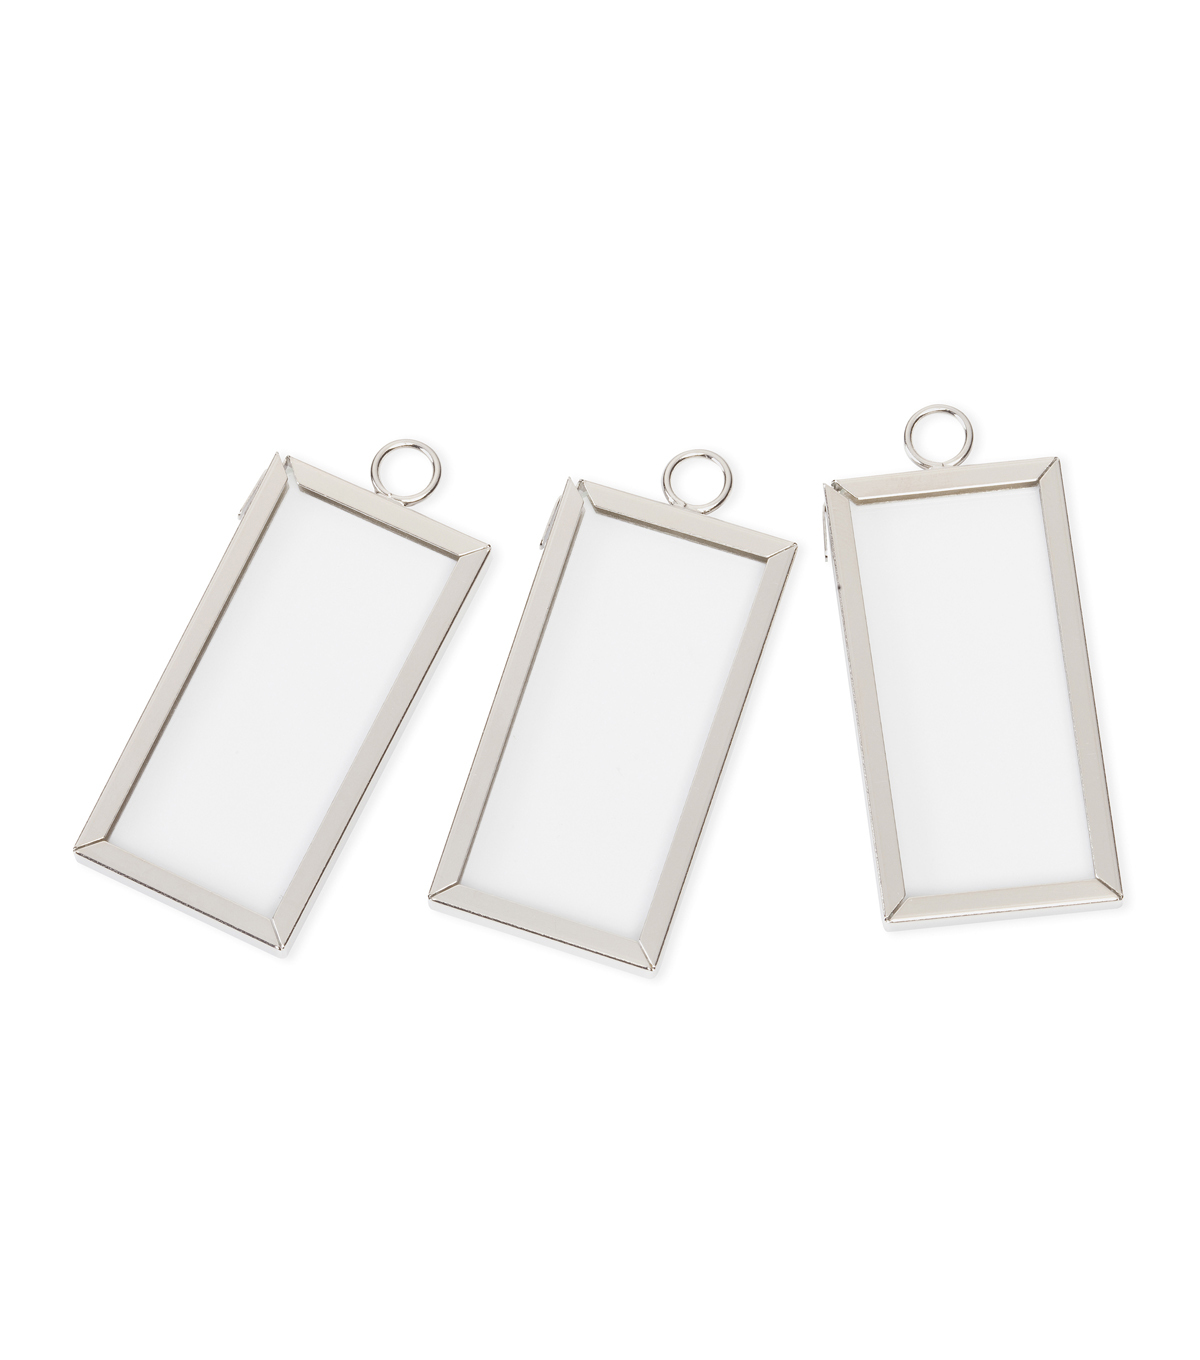 mini frame charm rectangle silver 1 x 2 inches 3 sets - Mini Frame